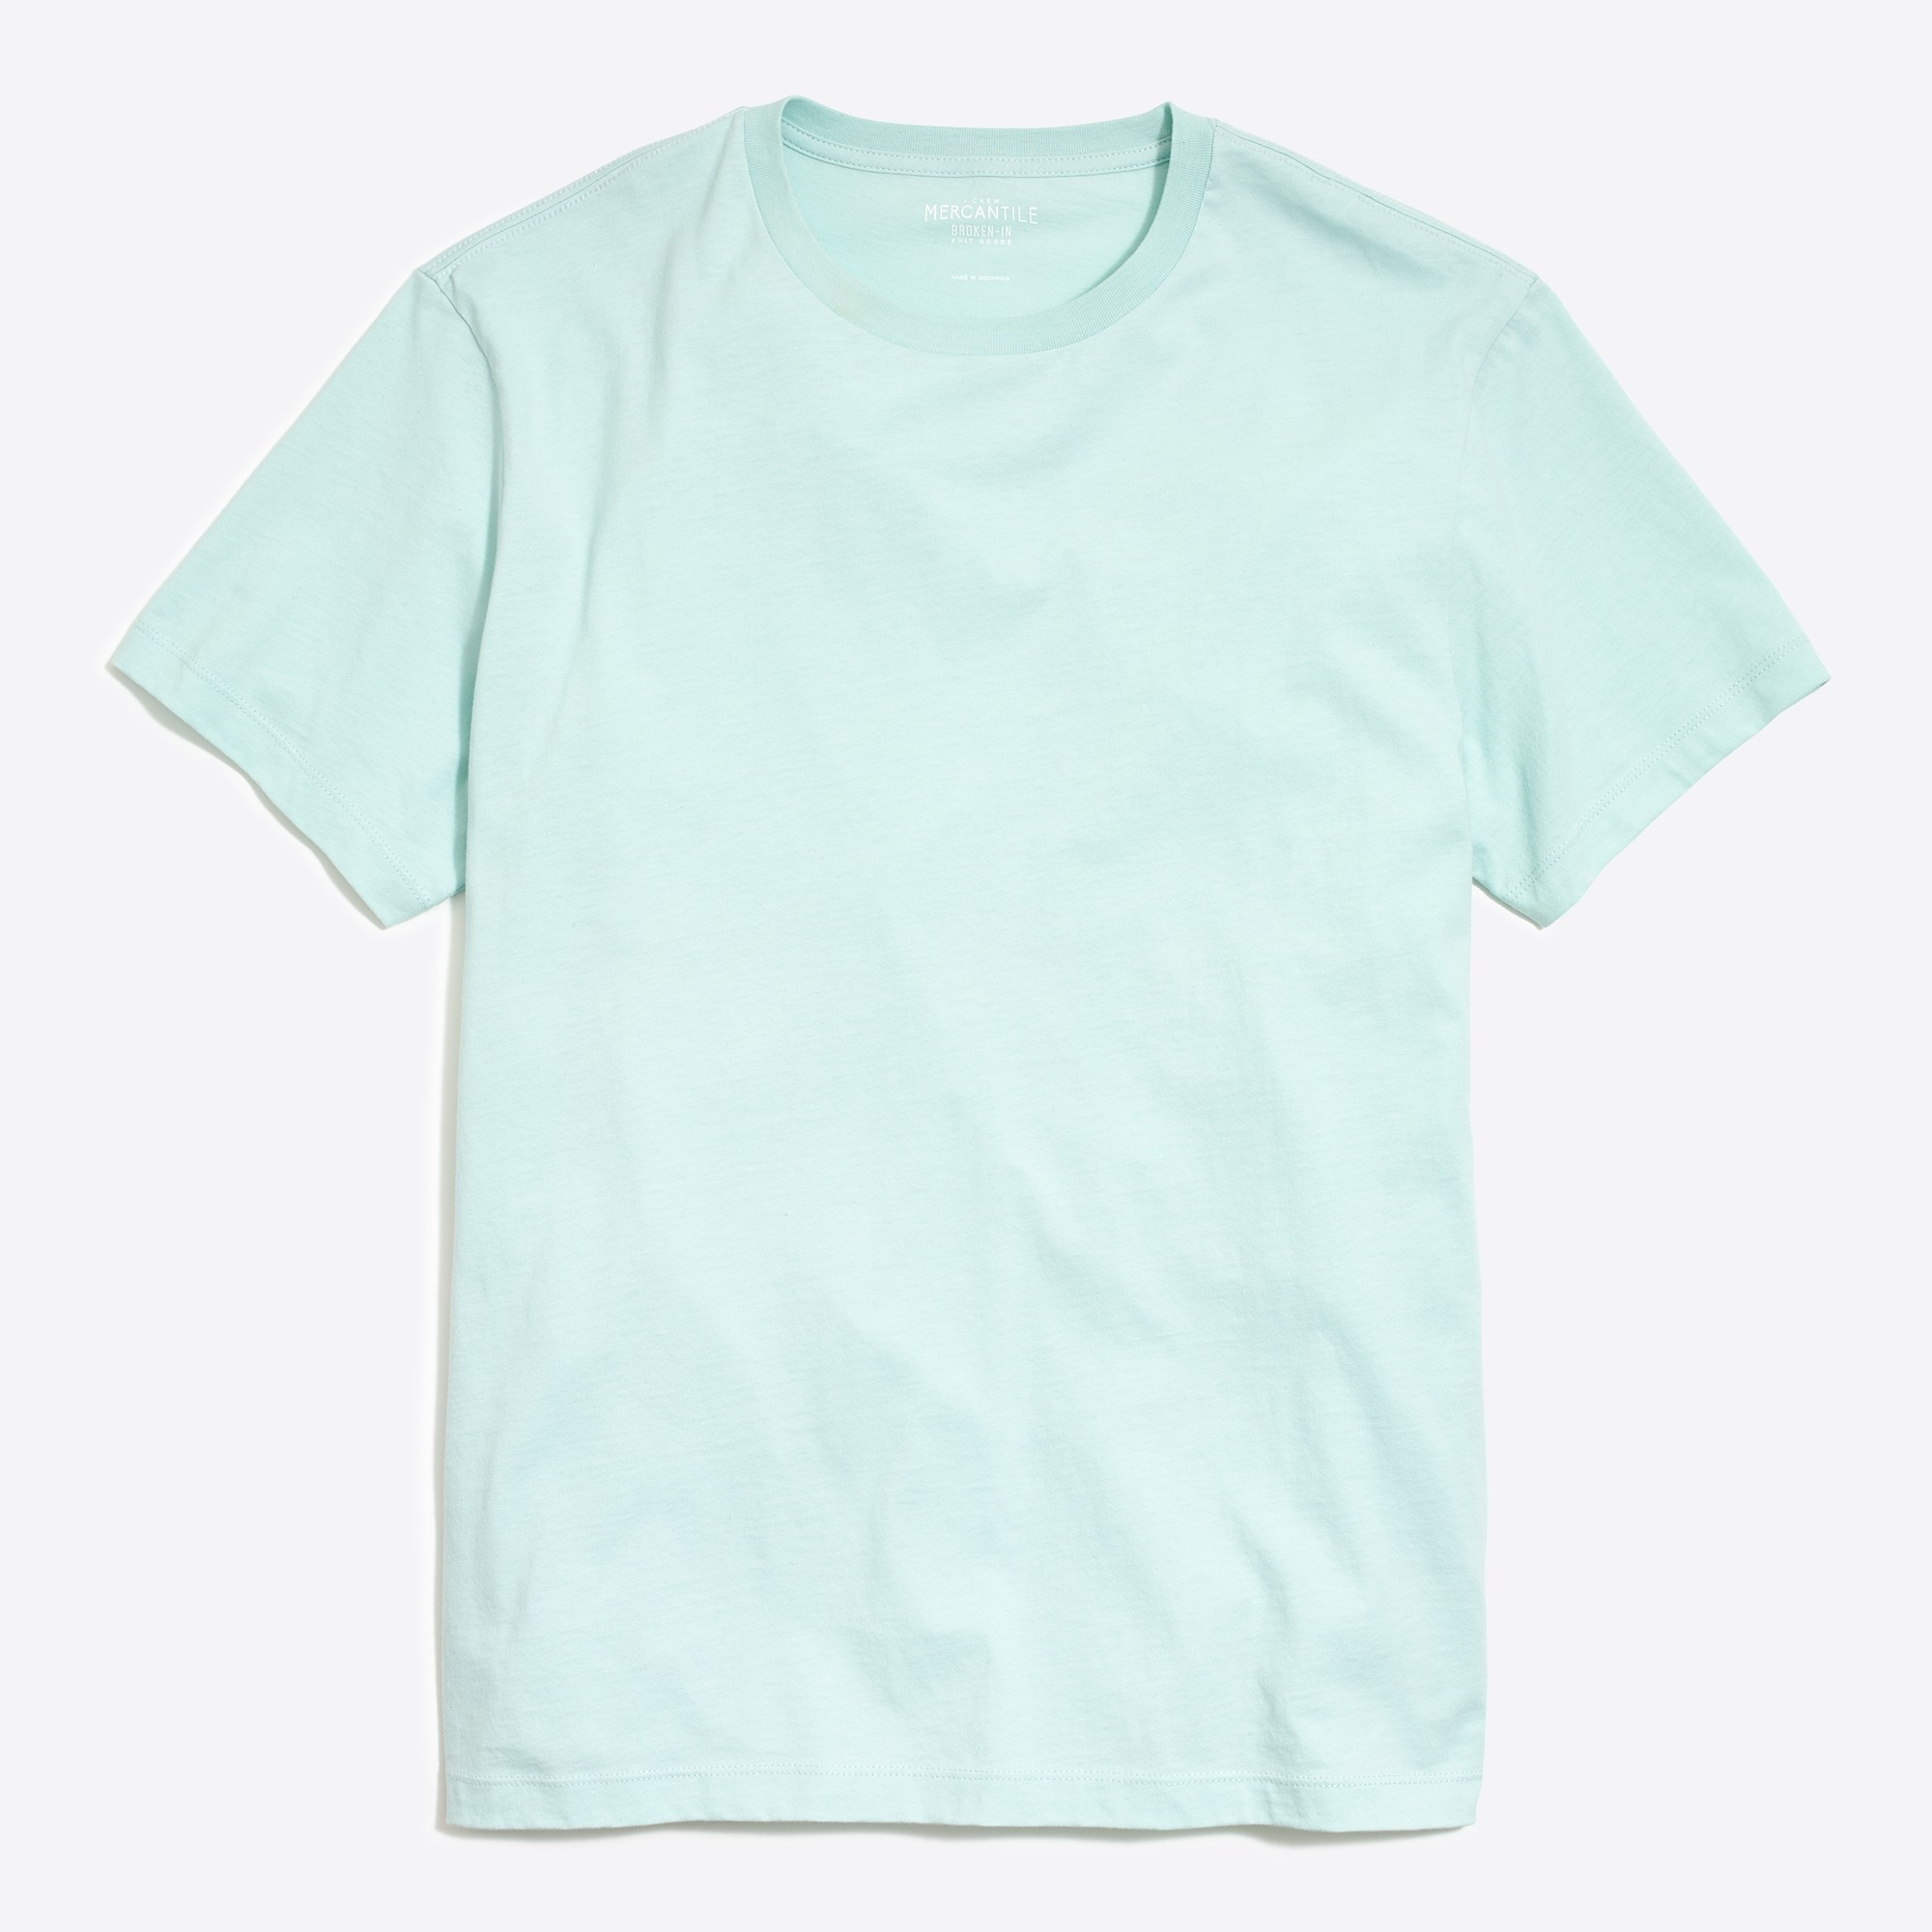 Image 2 for J.Crew Mercantile slim Broken-in T-shirt